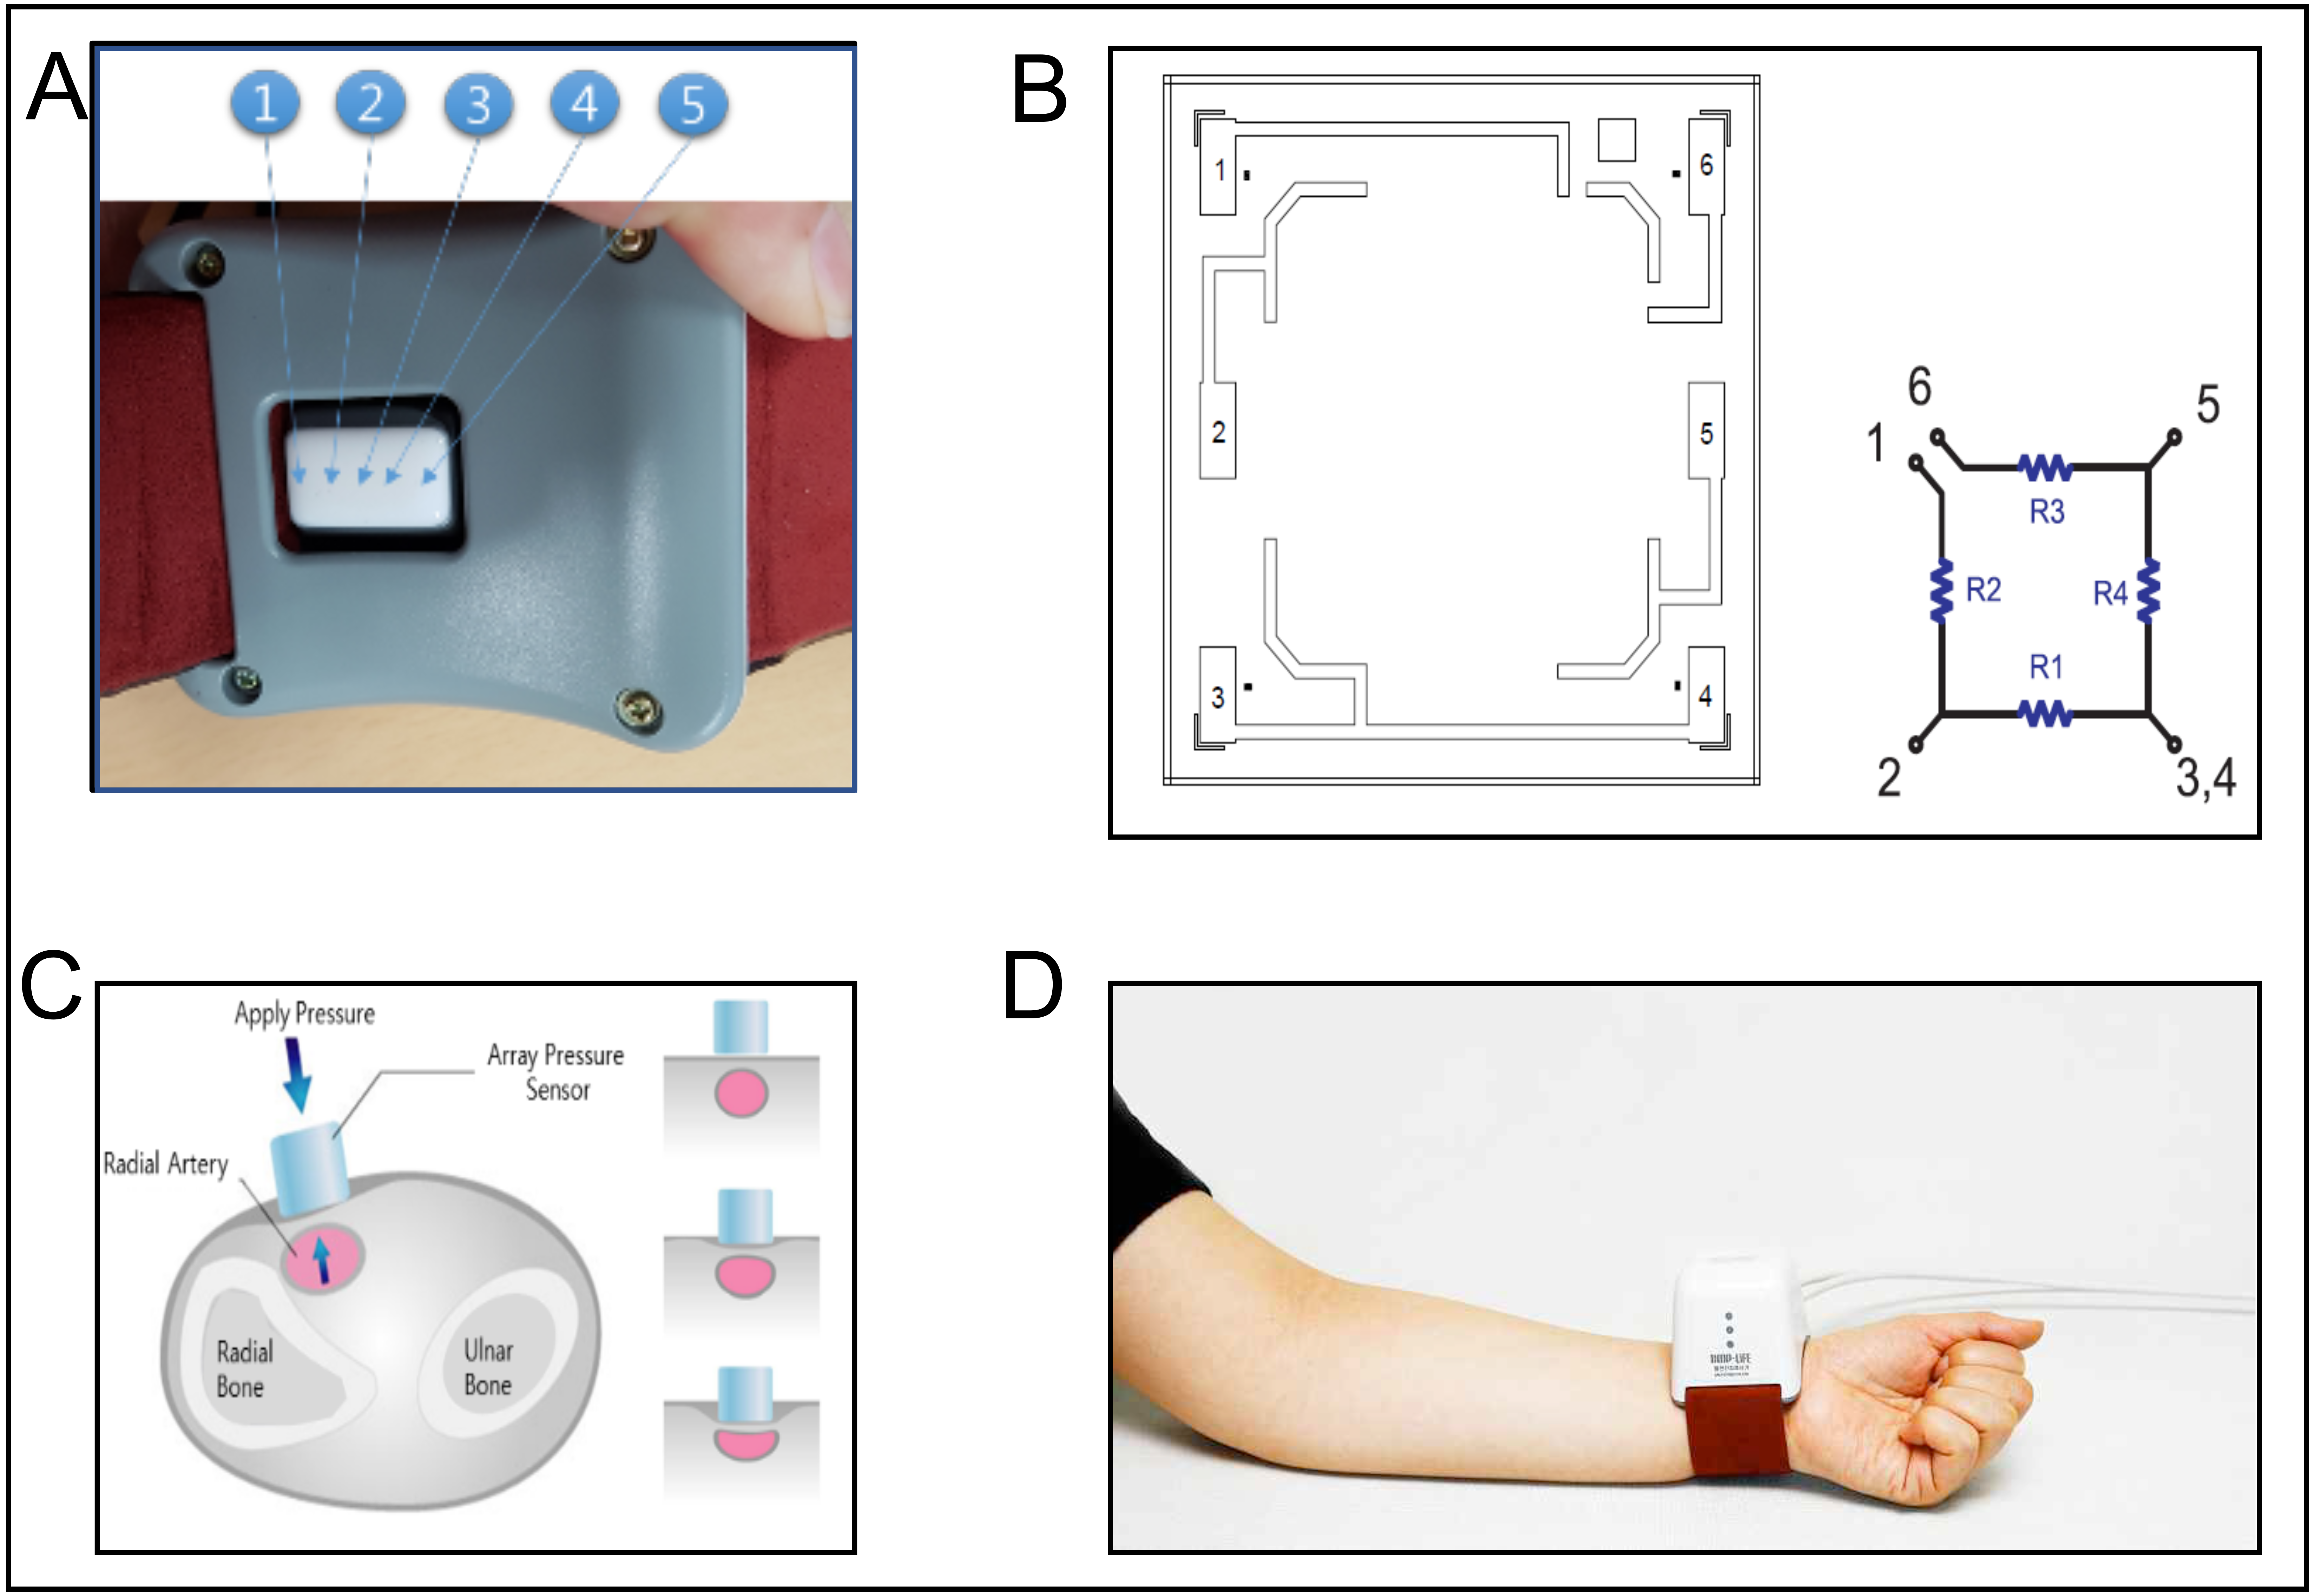 Comparison Between Radial Artery Tonometry Pulse Analyzer And Pulsed